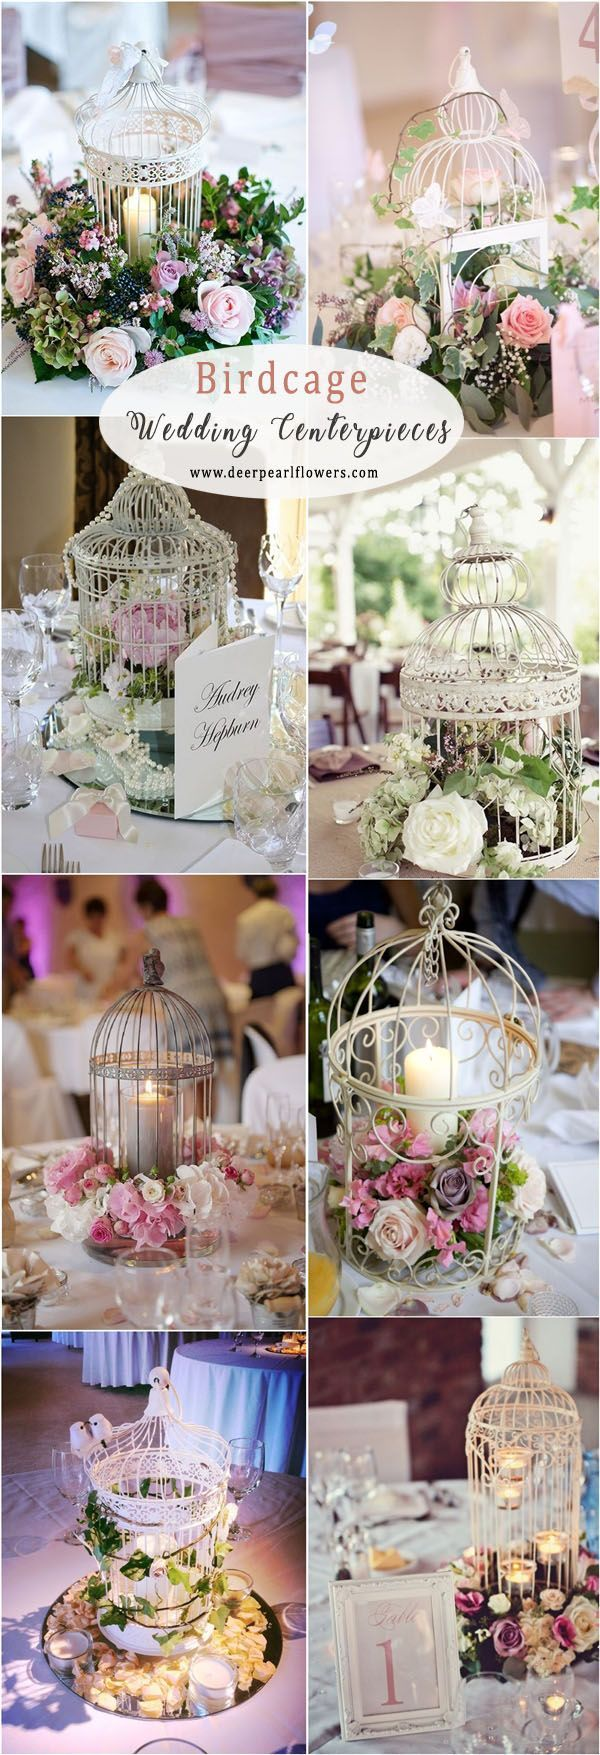 Wedding decorations lilac september 2018 Pin by Sam Bullock on Event center in   Pinterest  Birdcage